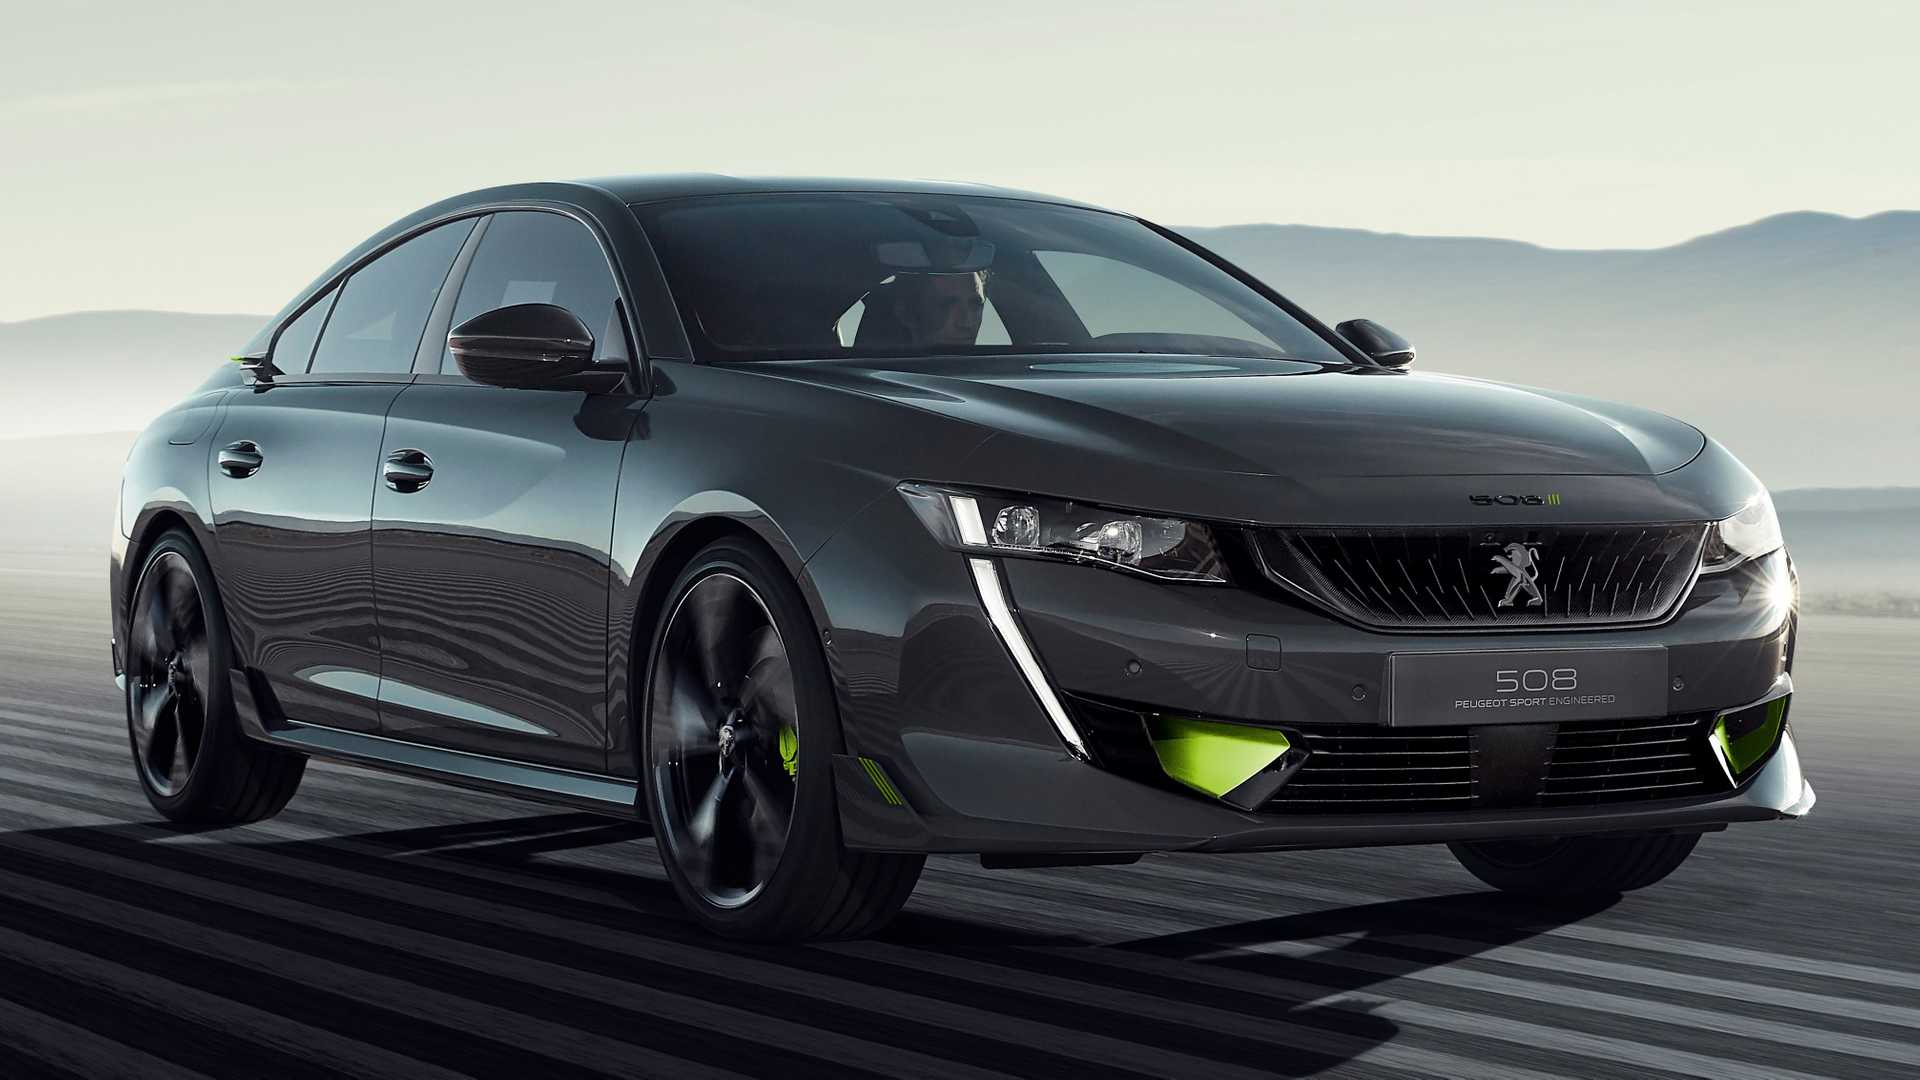 Concept 508 Peugeot Sport Engineered Debuts As 155 Mph Hybrid